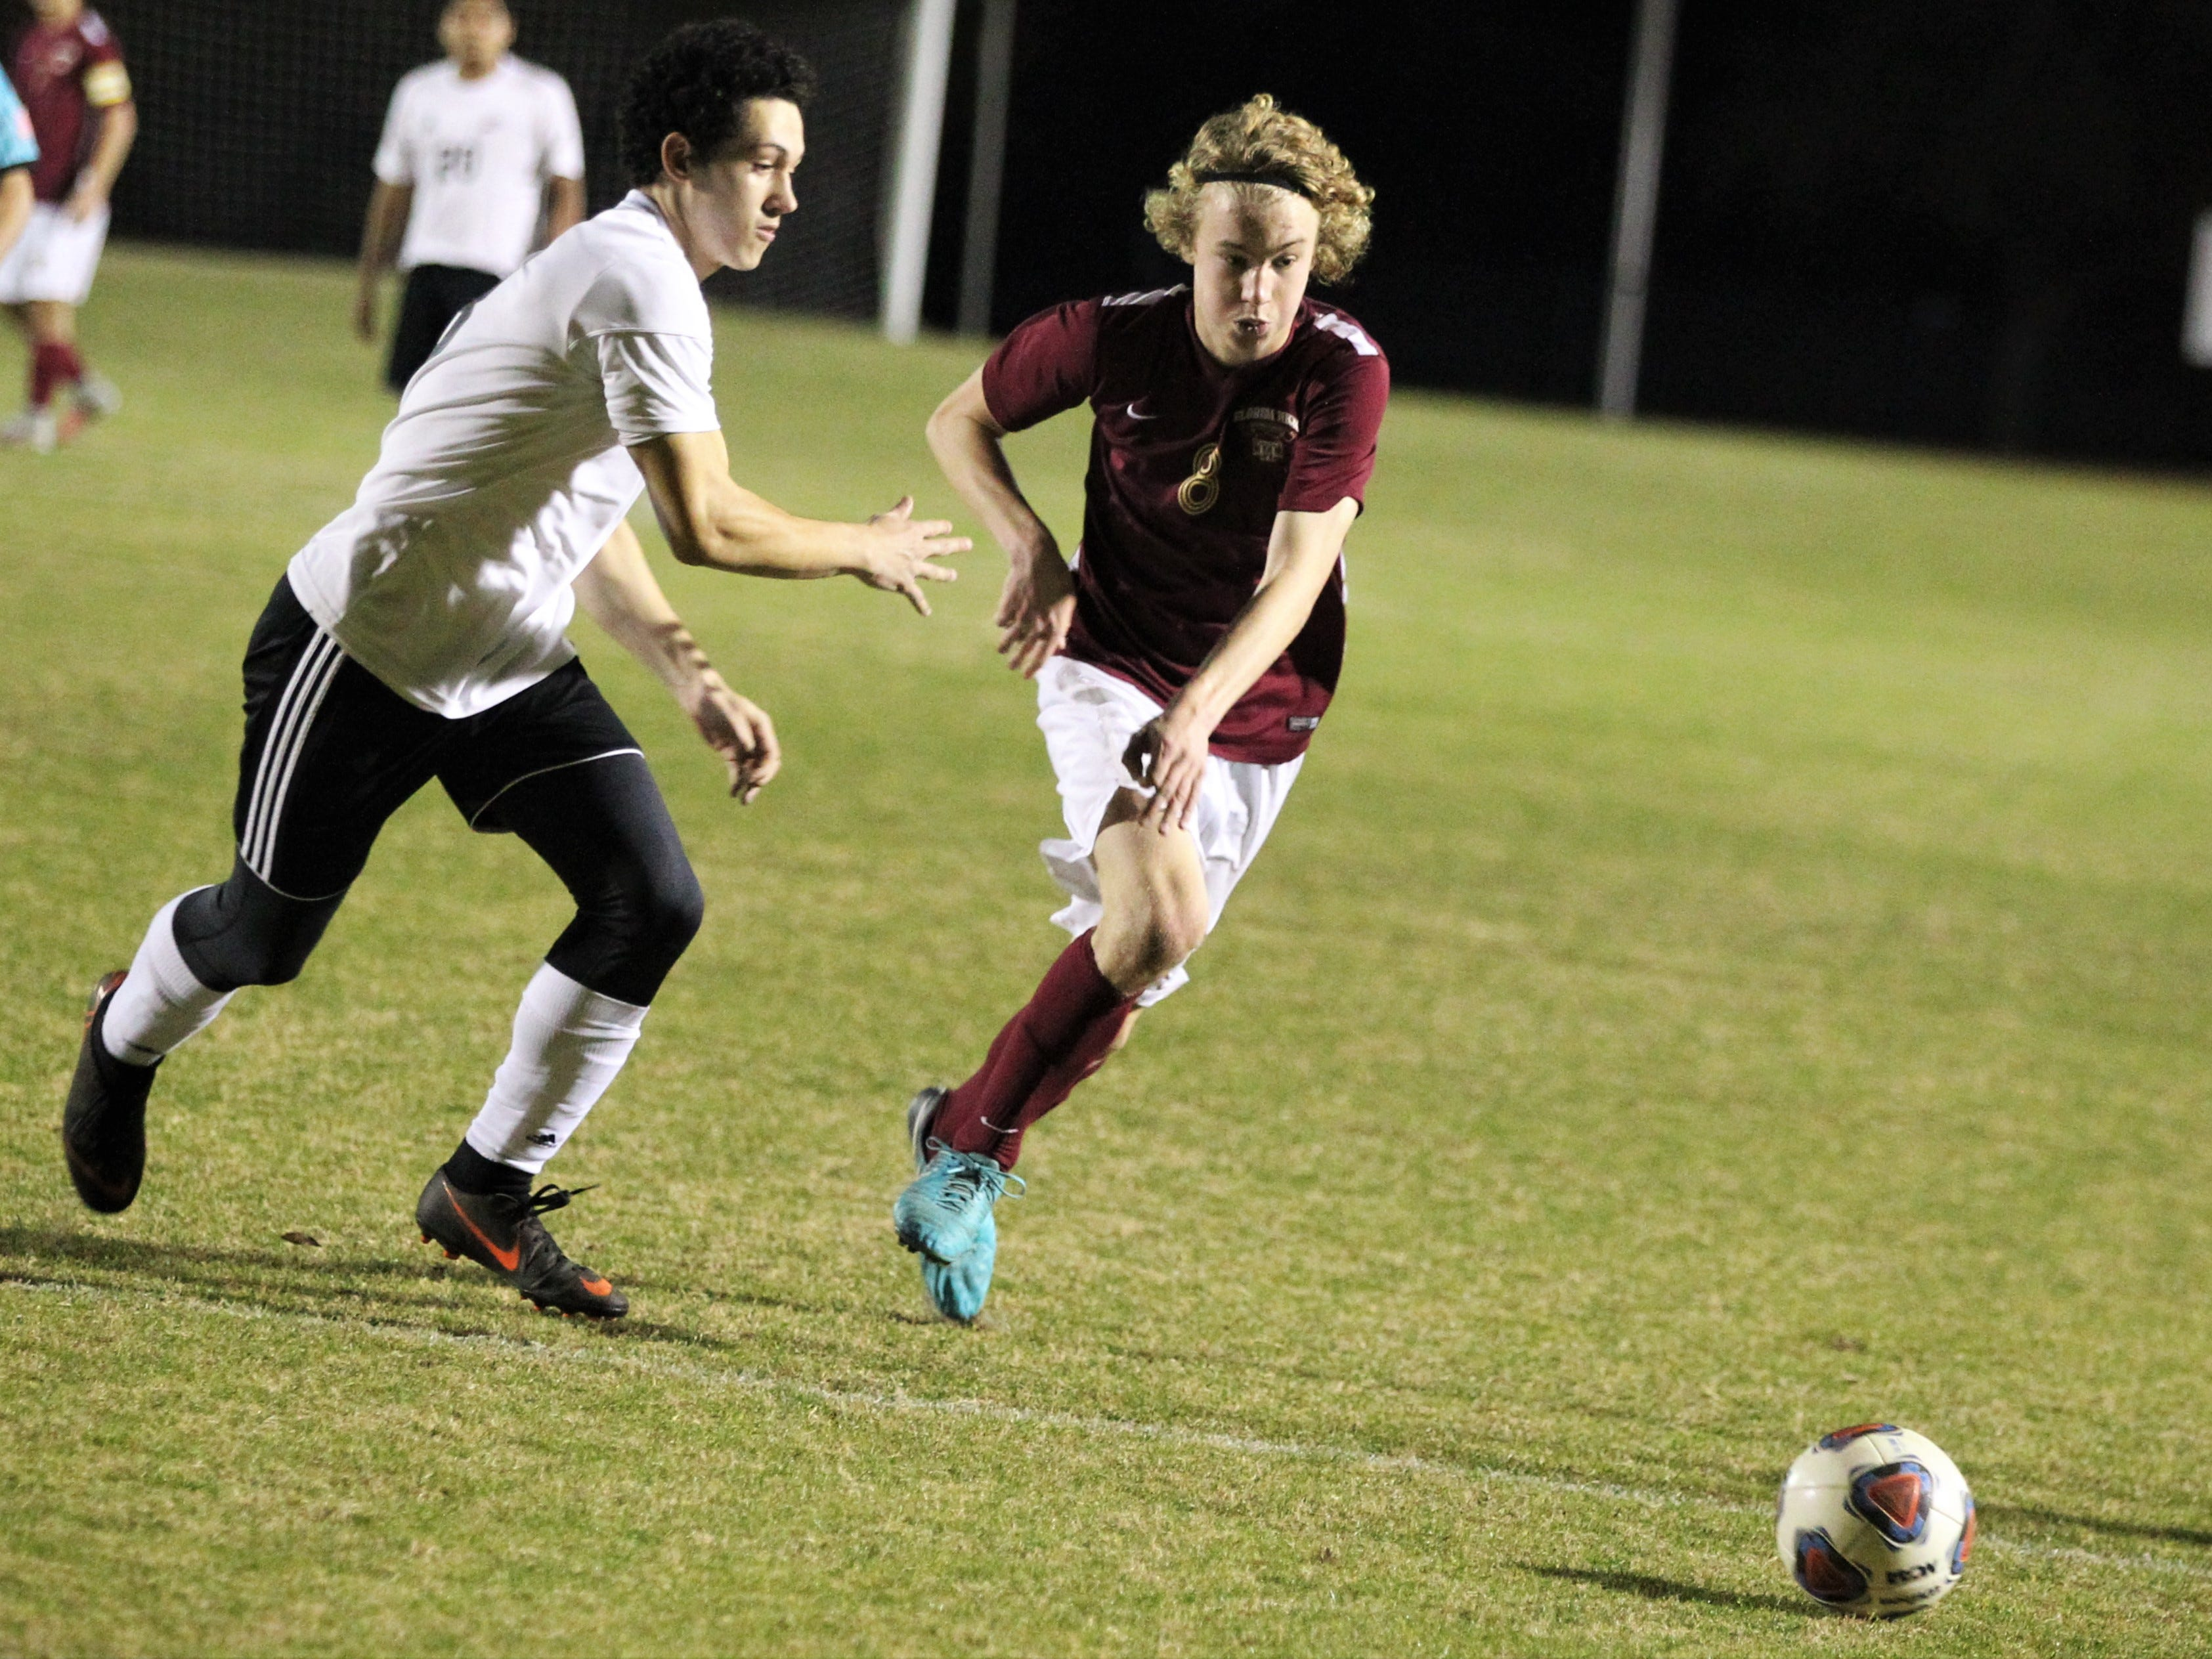 Florida High's Beecher Lewis races to a pass as Florida High's boys soccer team beat South Walton 2-0 during a Region 1-2A quarterfinal on Feb. 6, 2018.